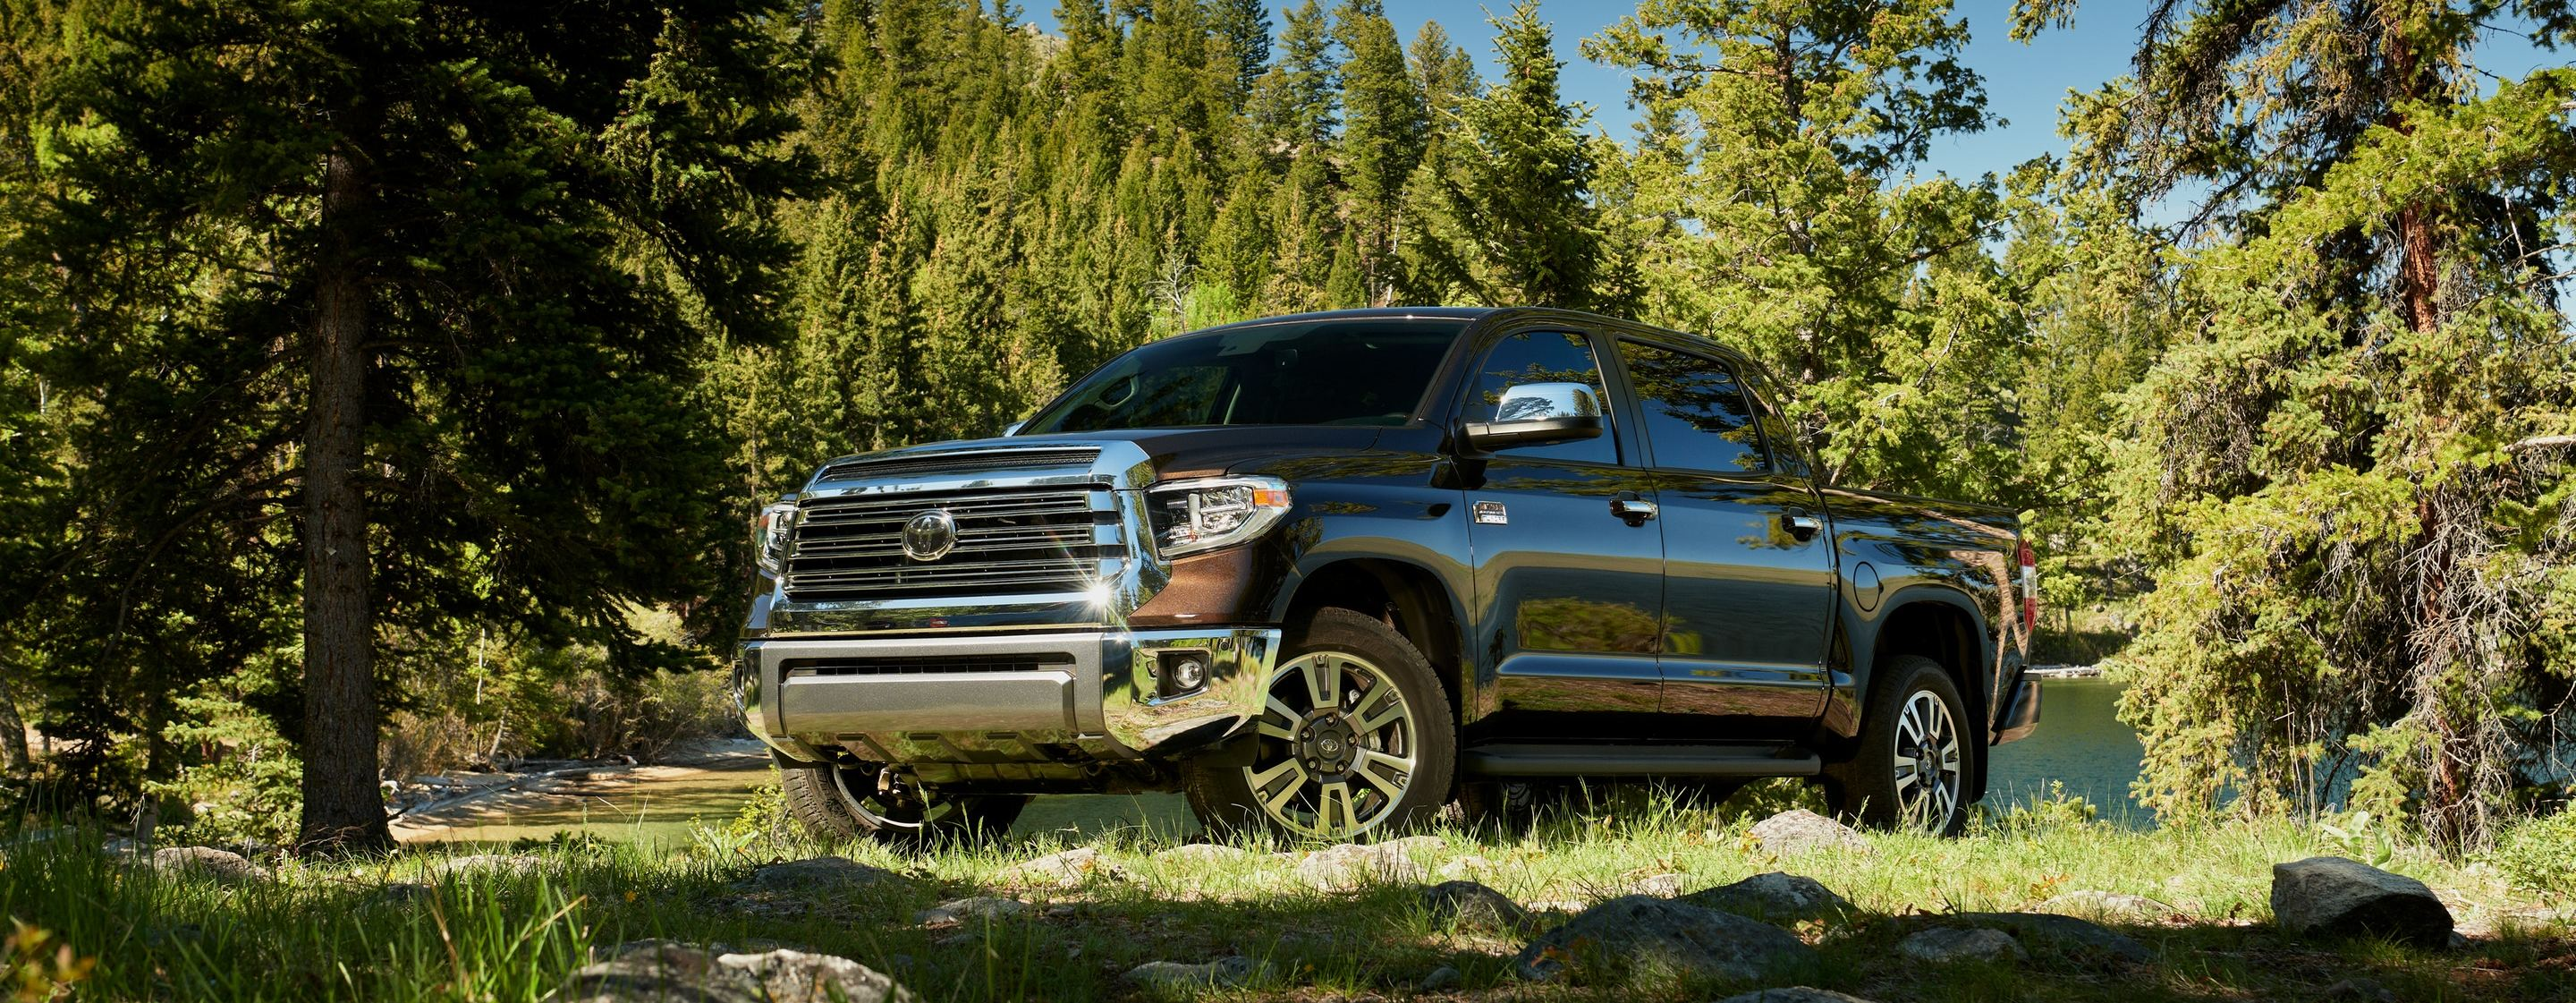 2020 Toyota Tundra Lease near Merriam, KS, 66203